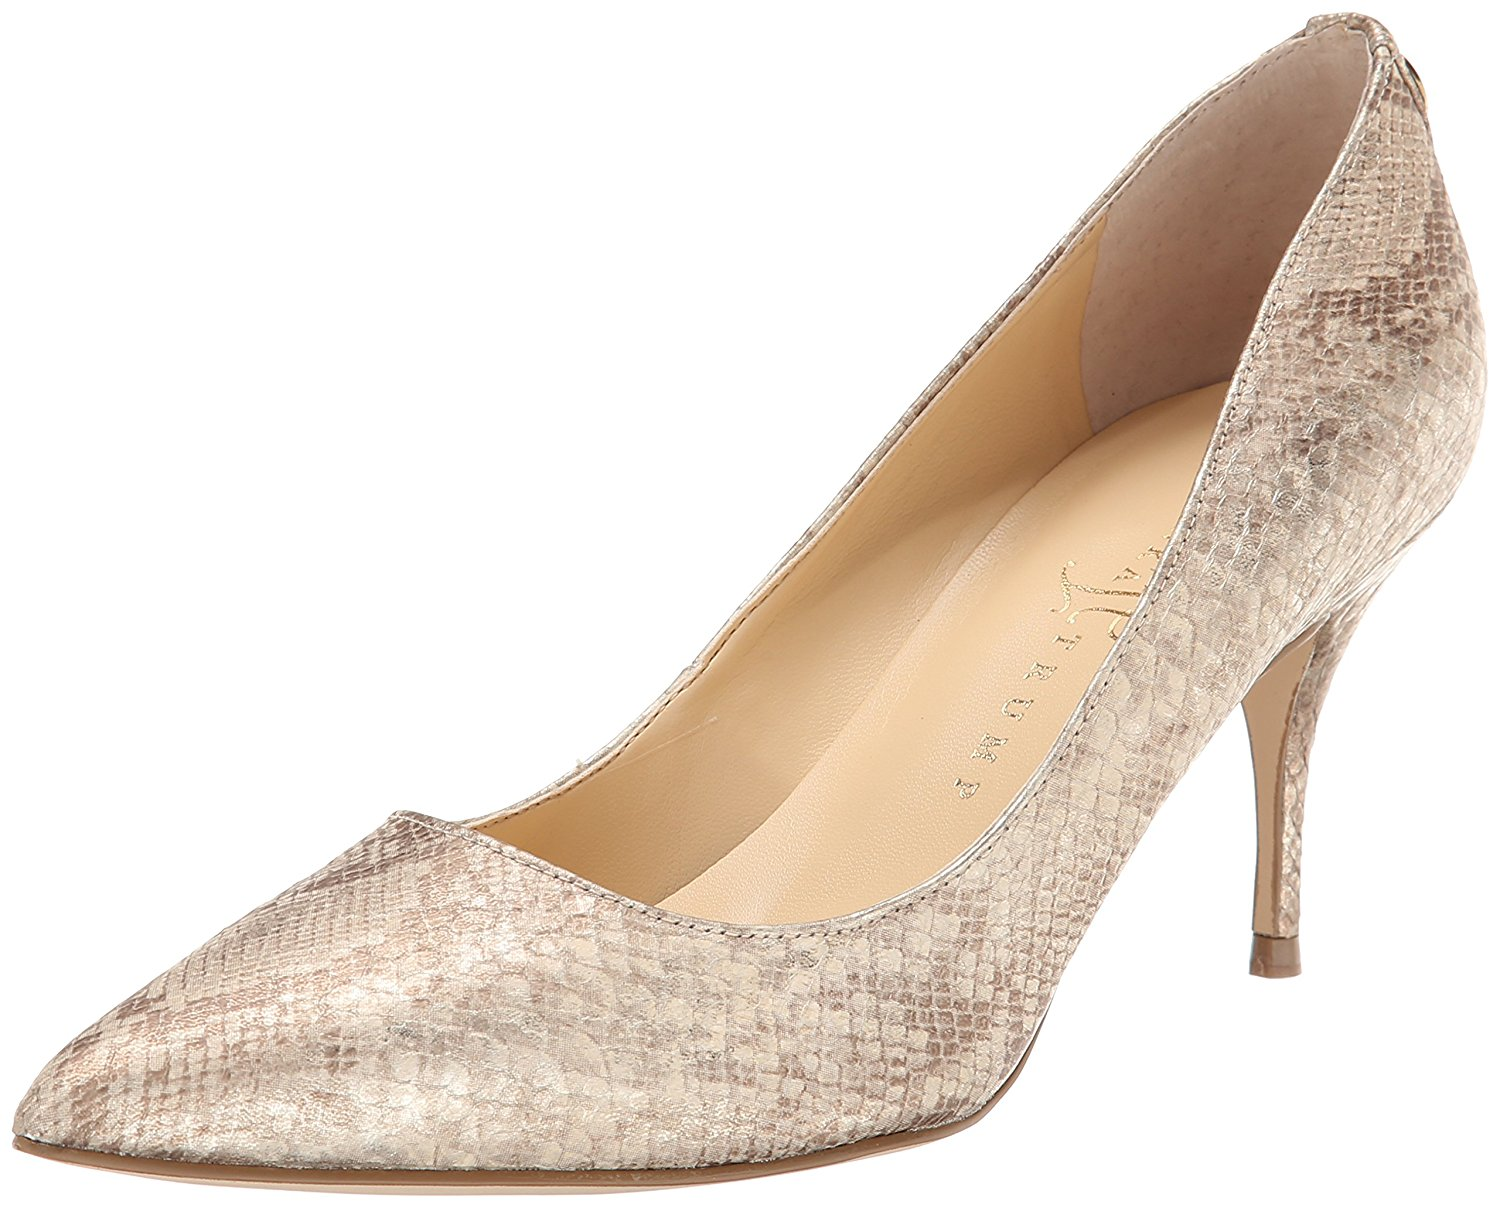 Ivanka Trump Womens Tirra3 Pointed Toe Classic Pumps Beige/Gold Size 6.5